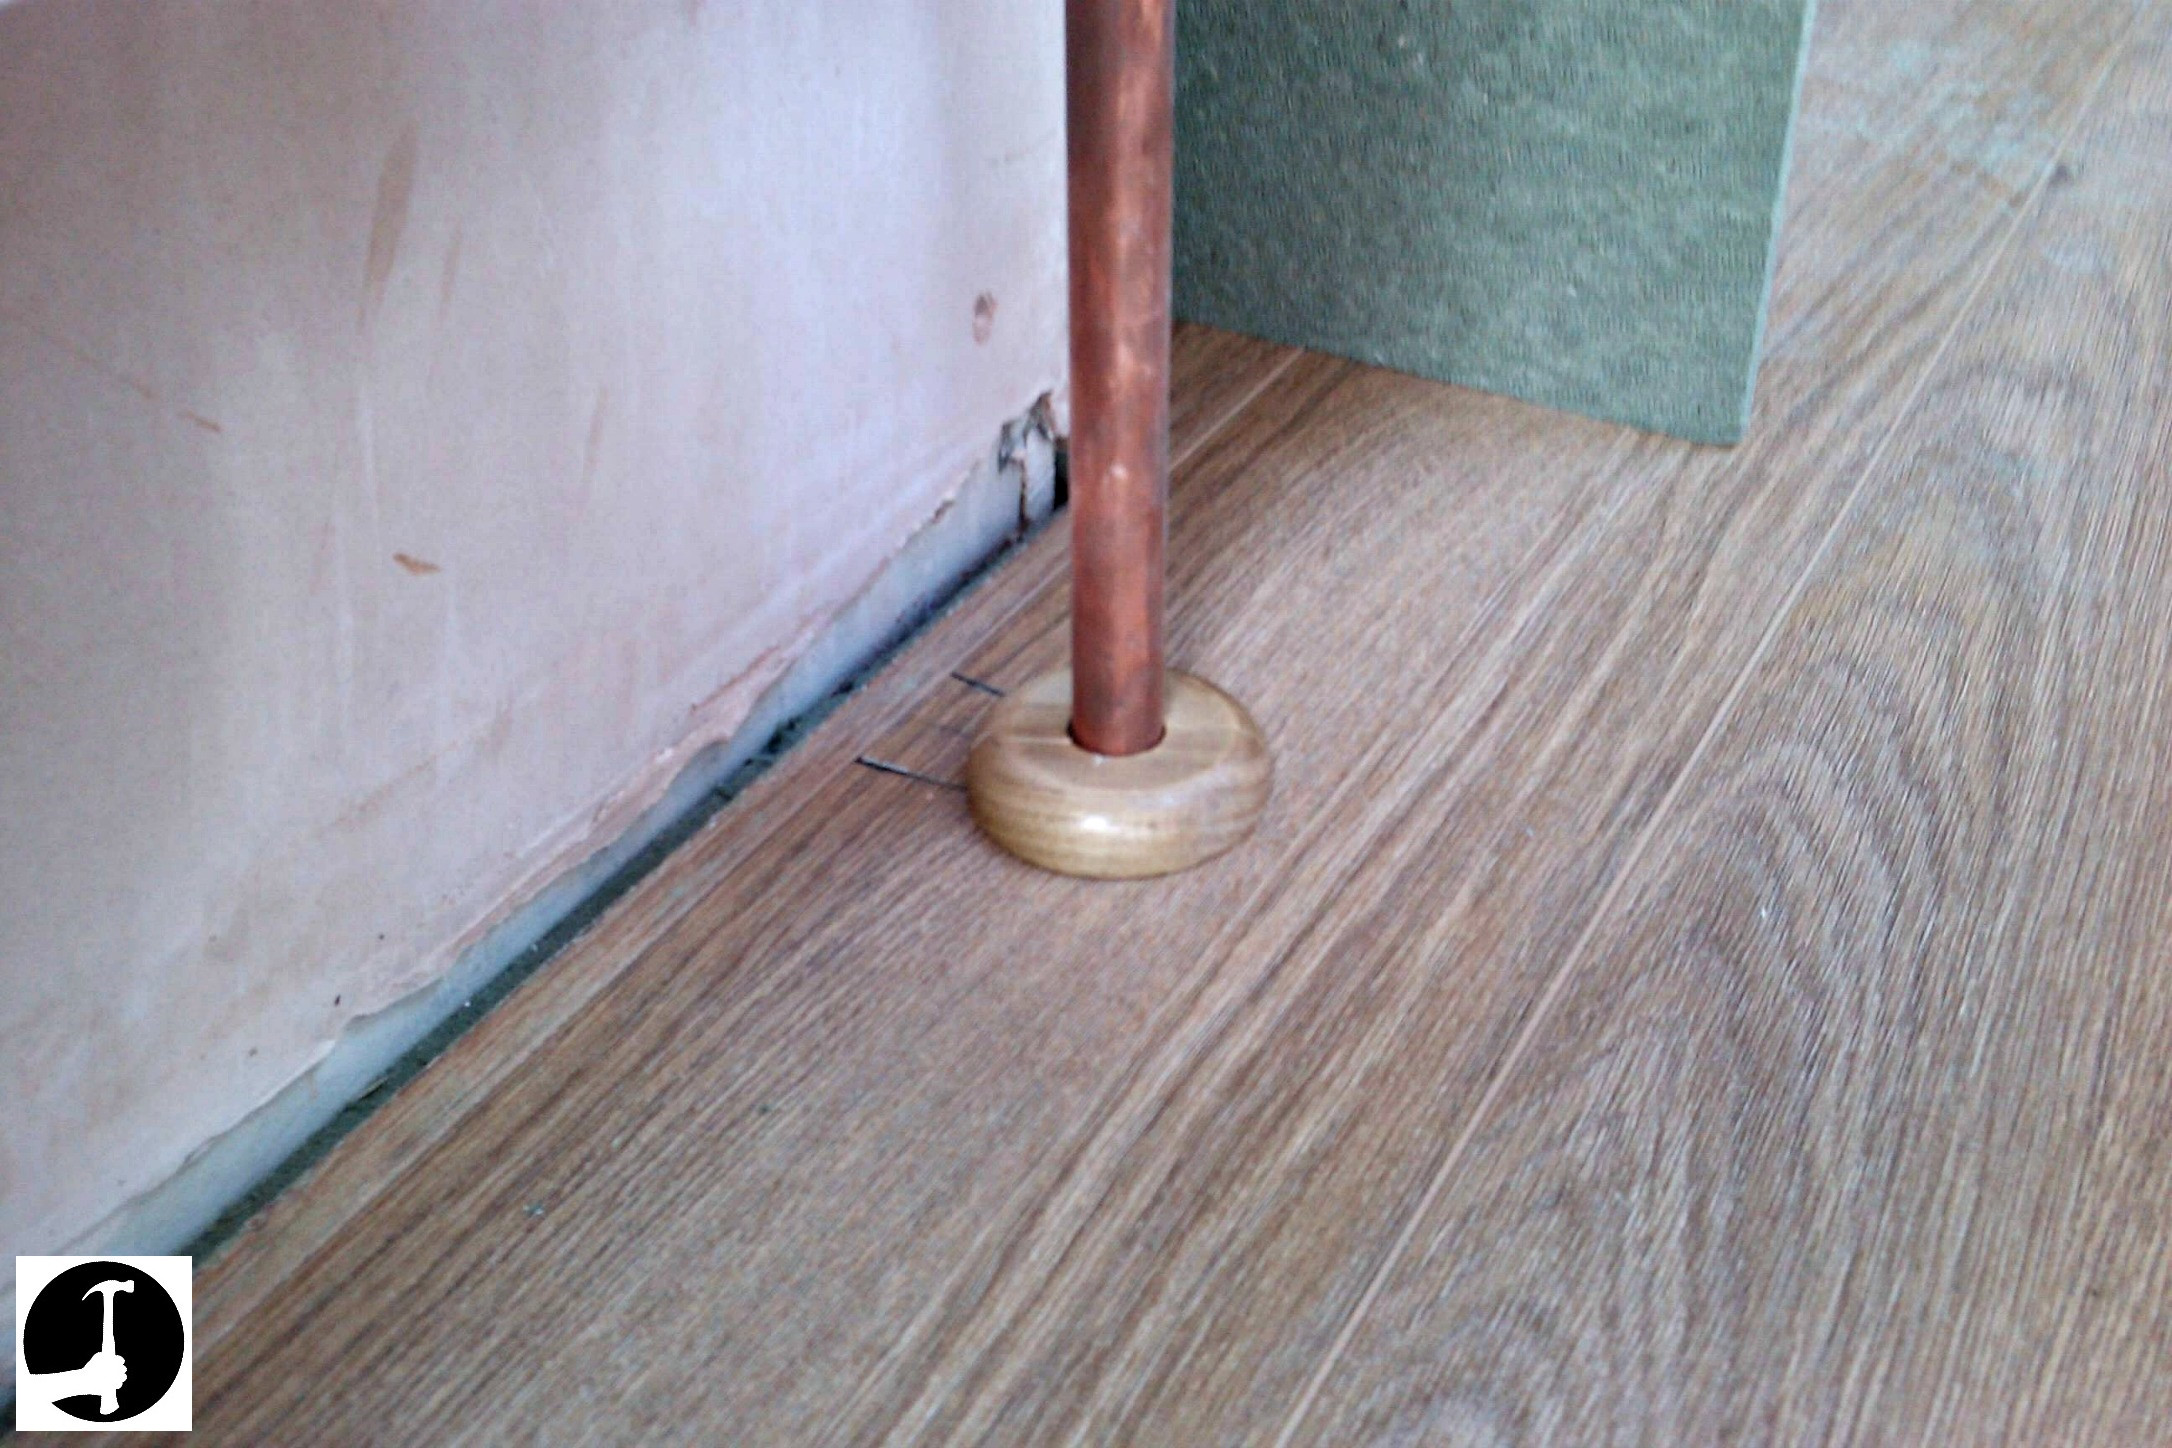 how to lay hardwood flooring on plywood of how to install laminate flooring with ease glued glue less systems for how to cut laminate around pipes